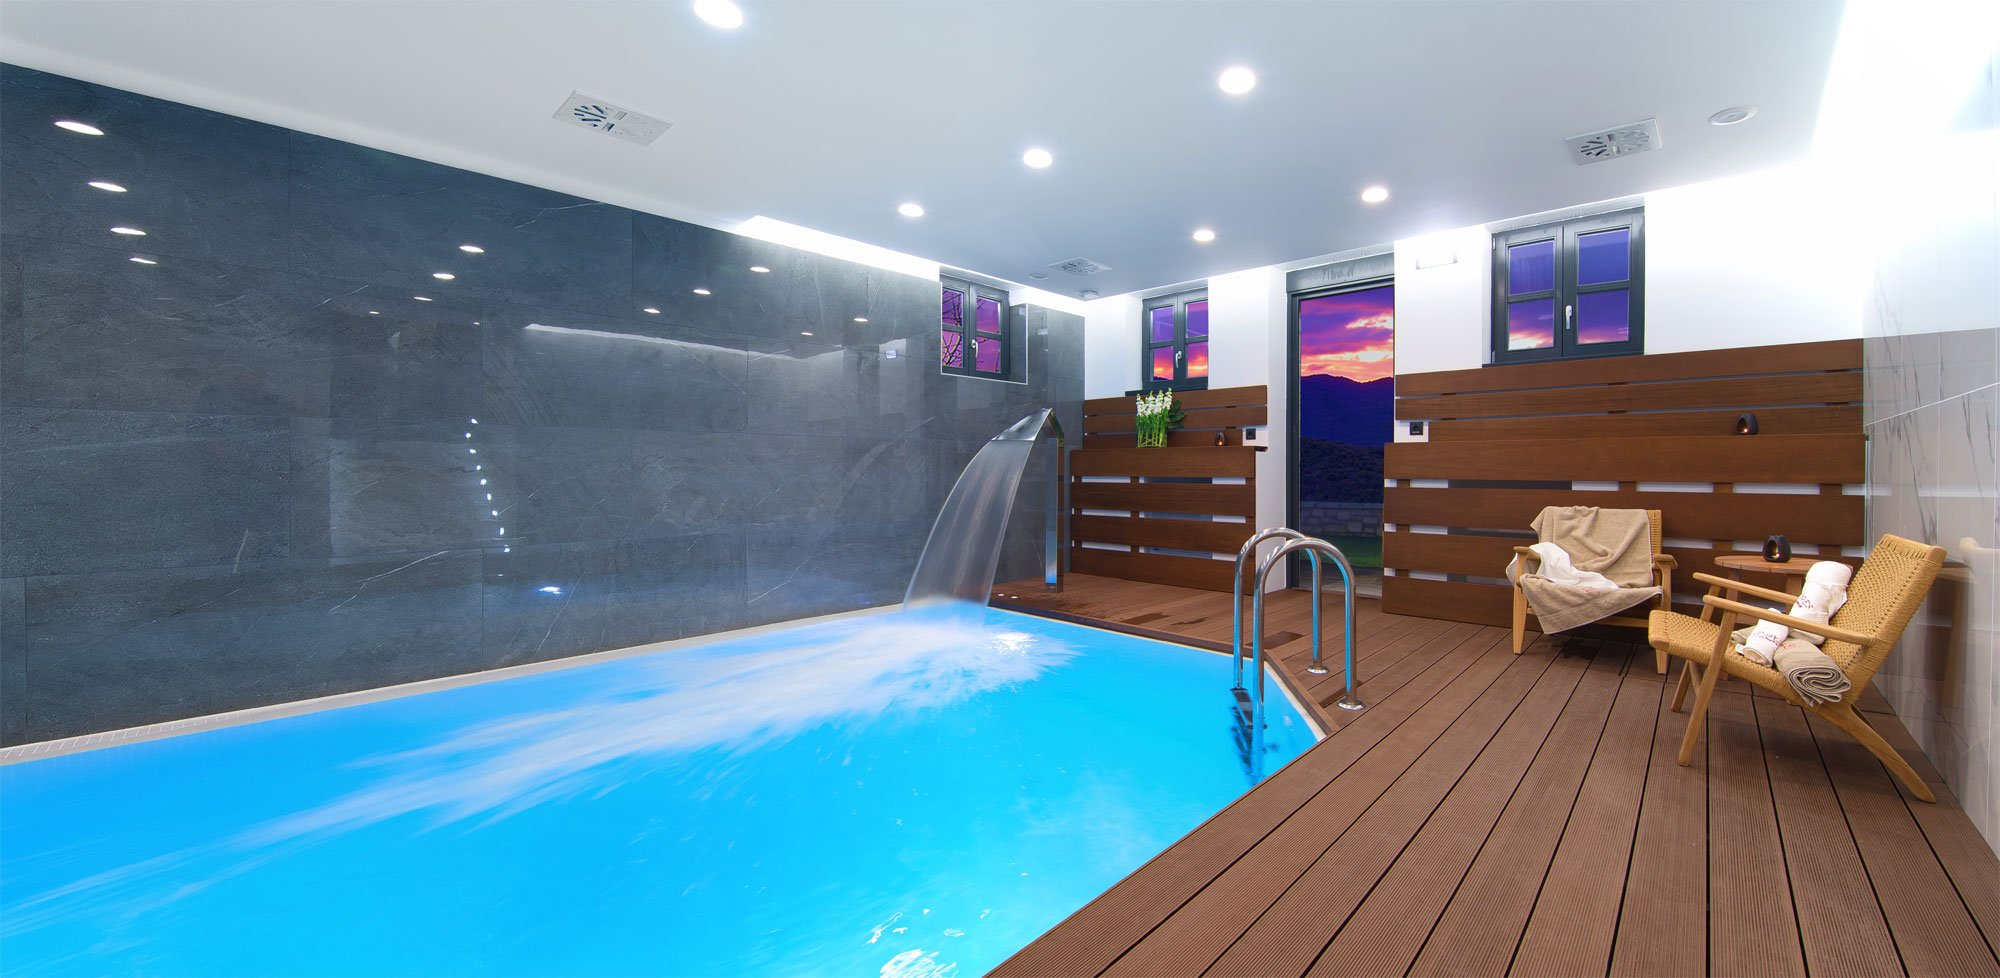 kores boutique hotel spa pool